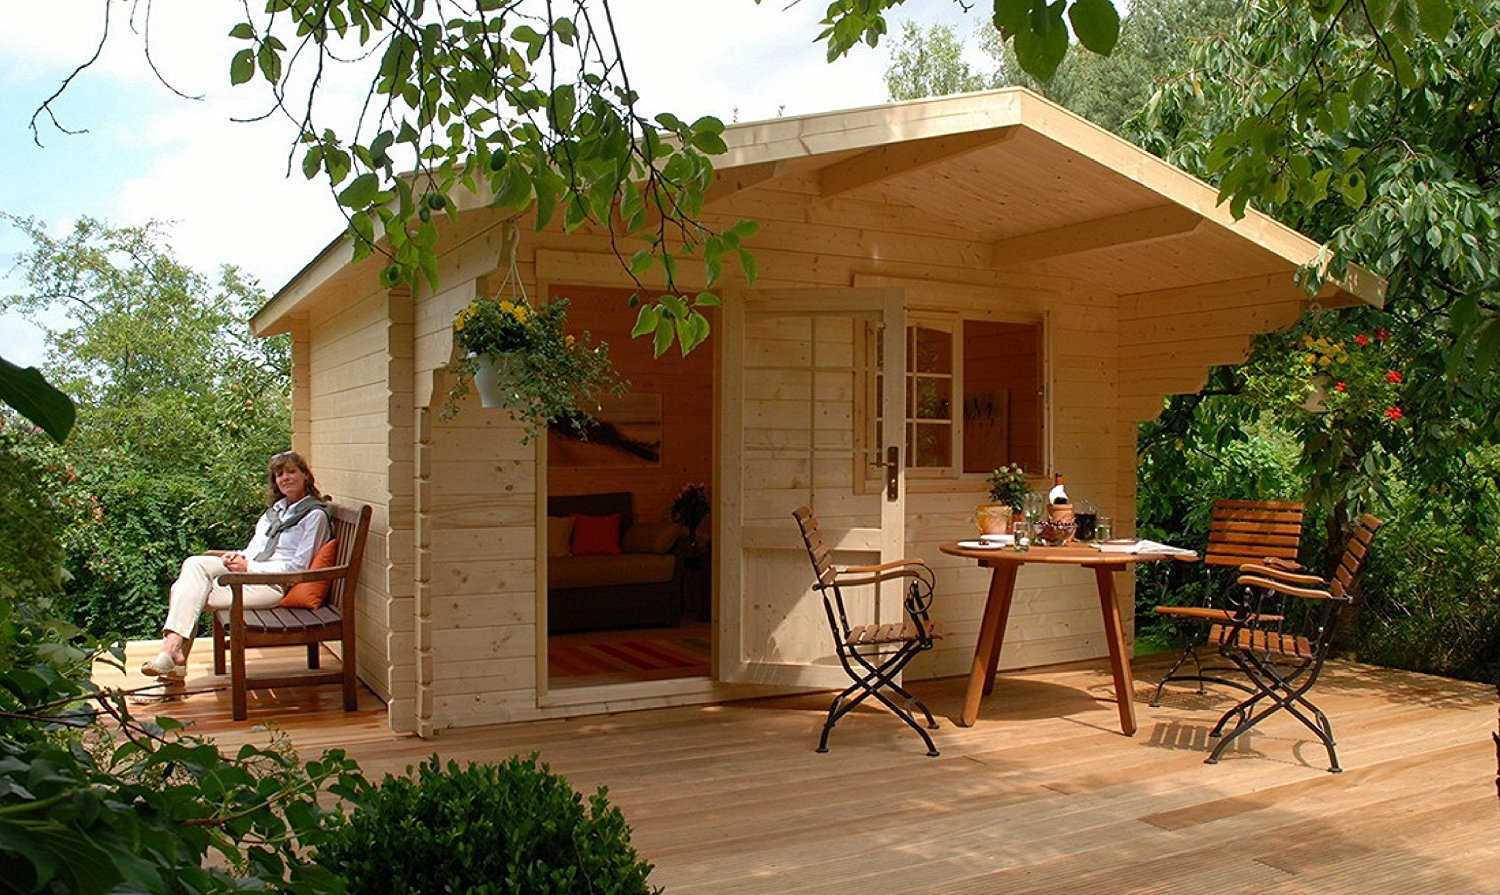 10 Tiny Houses on Amazon to buy